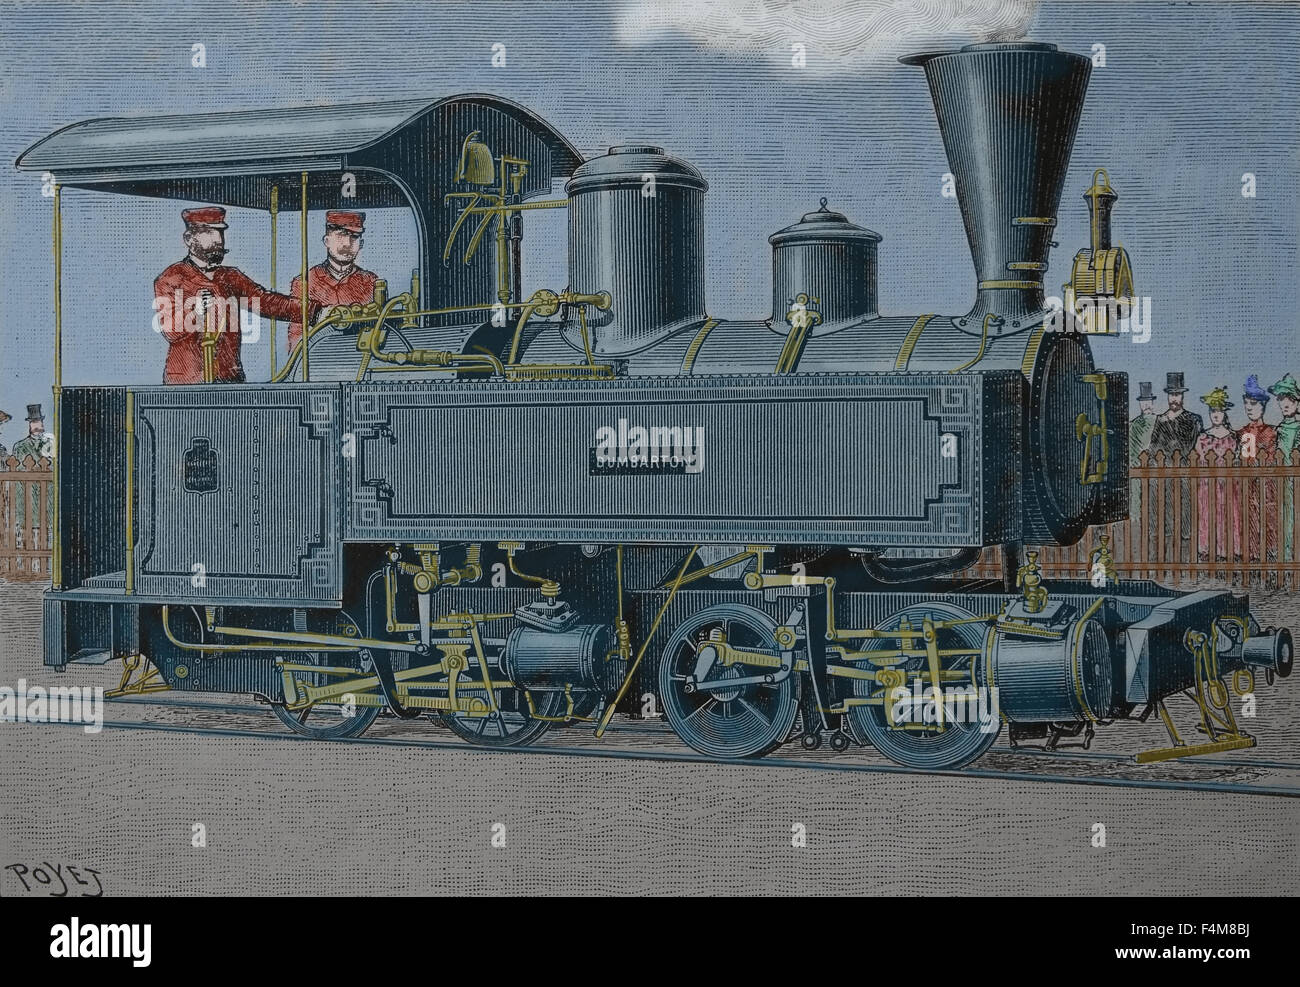 Steam locomotive. 19th century. Engraving. Later colouration. Stock Photo